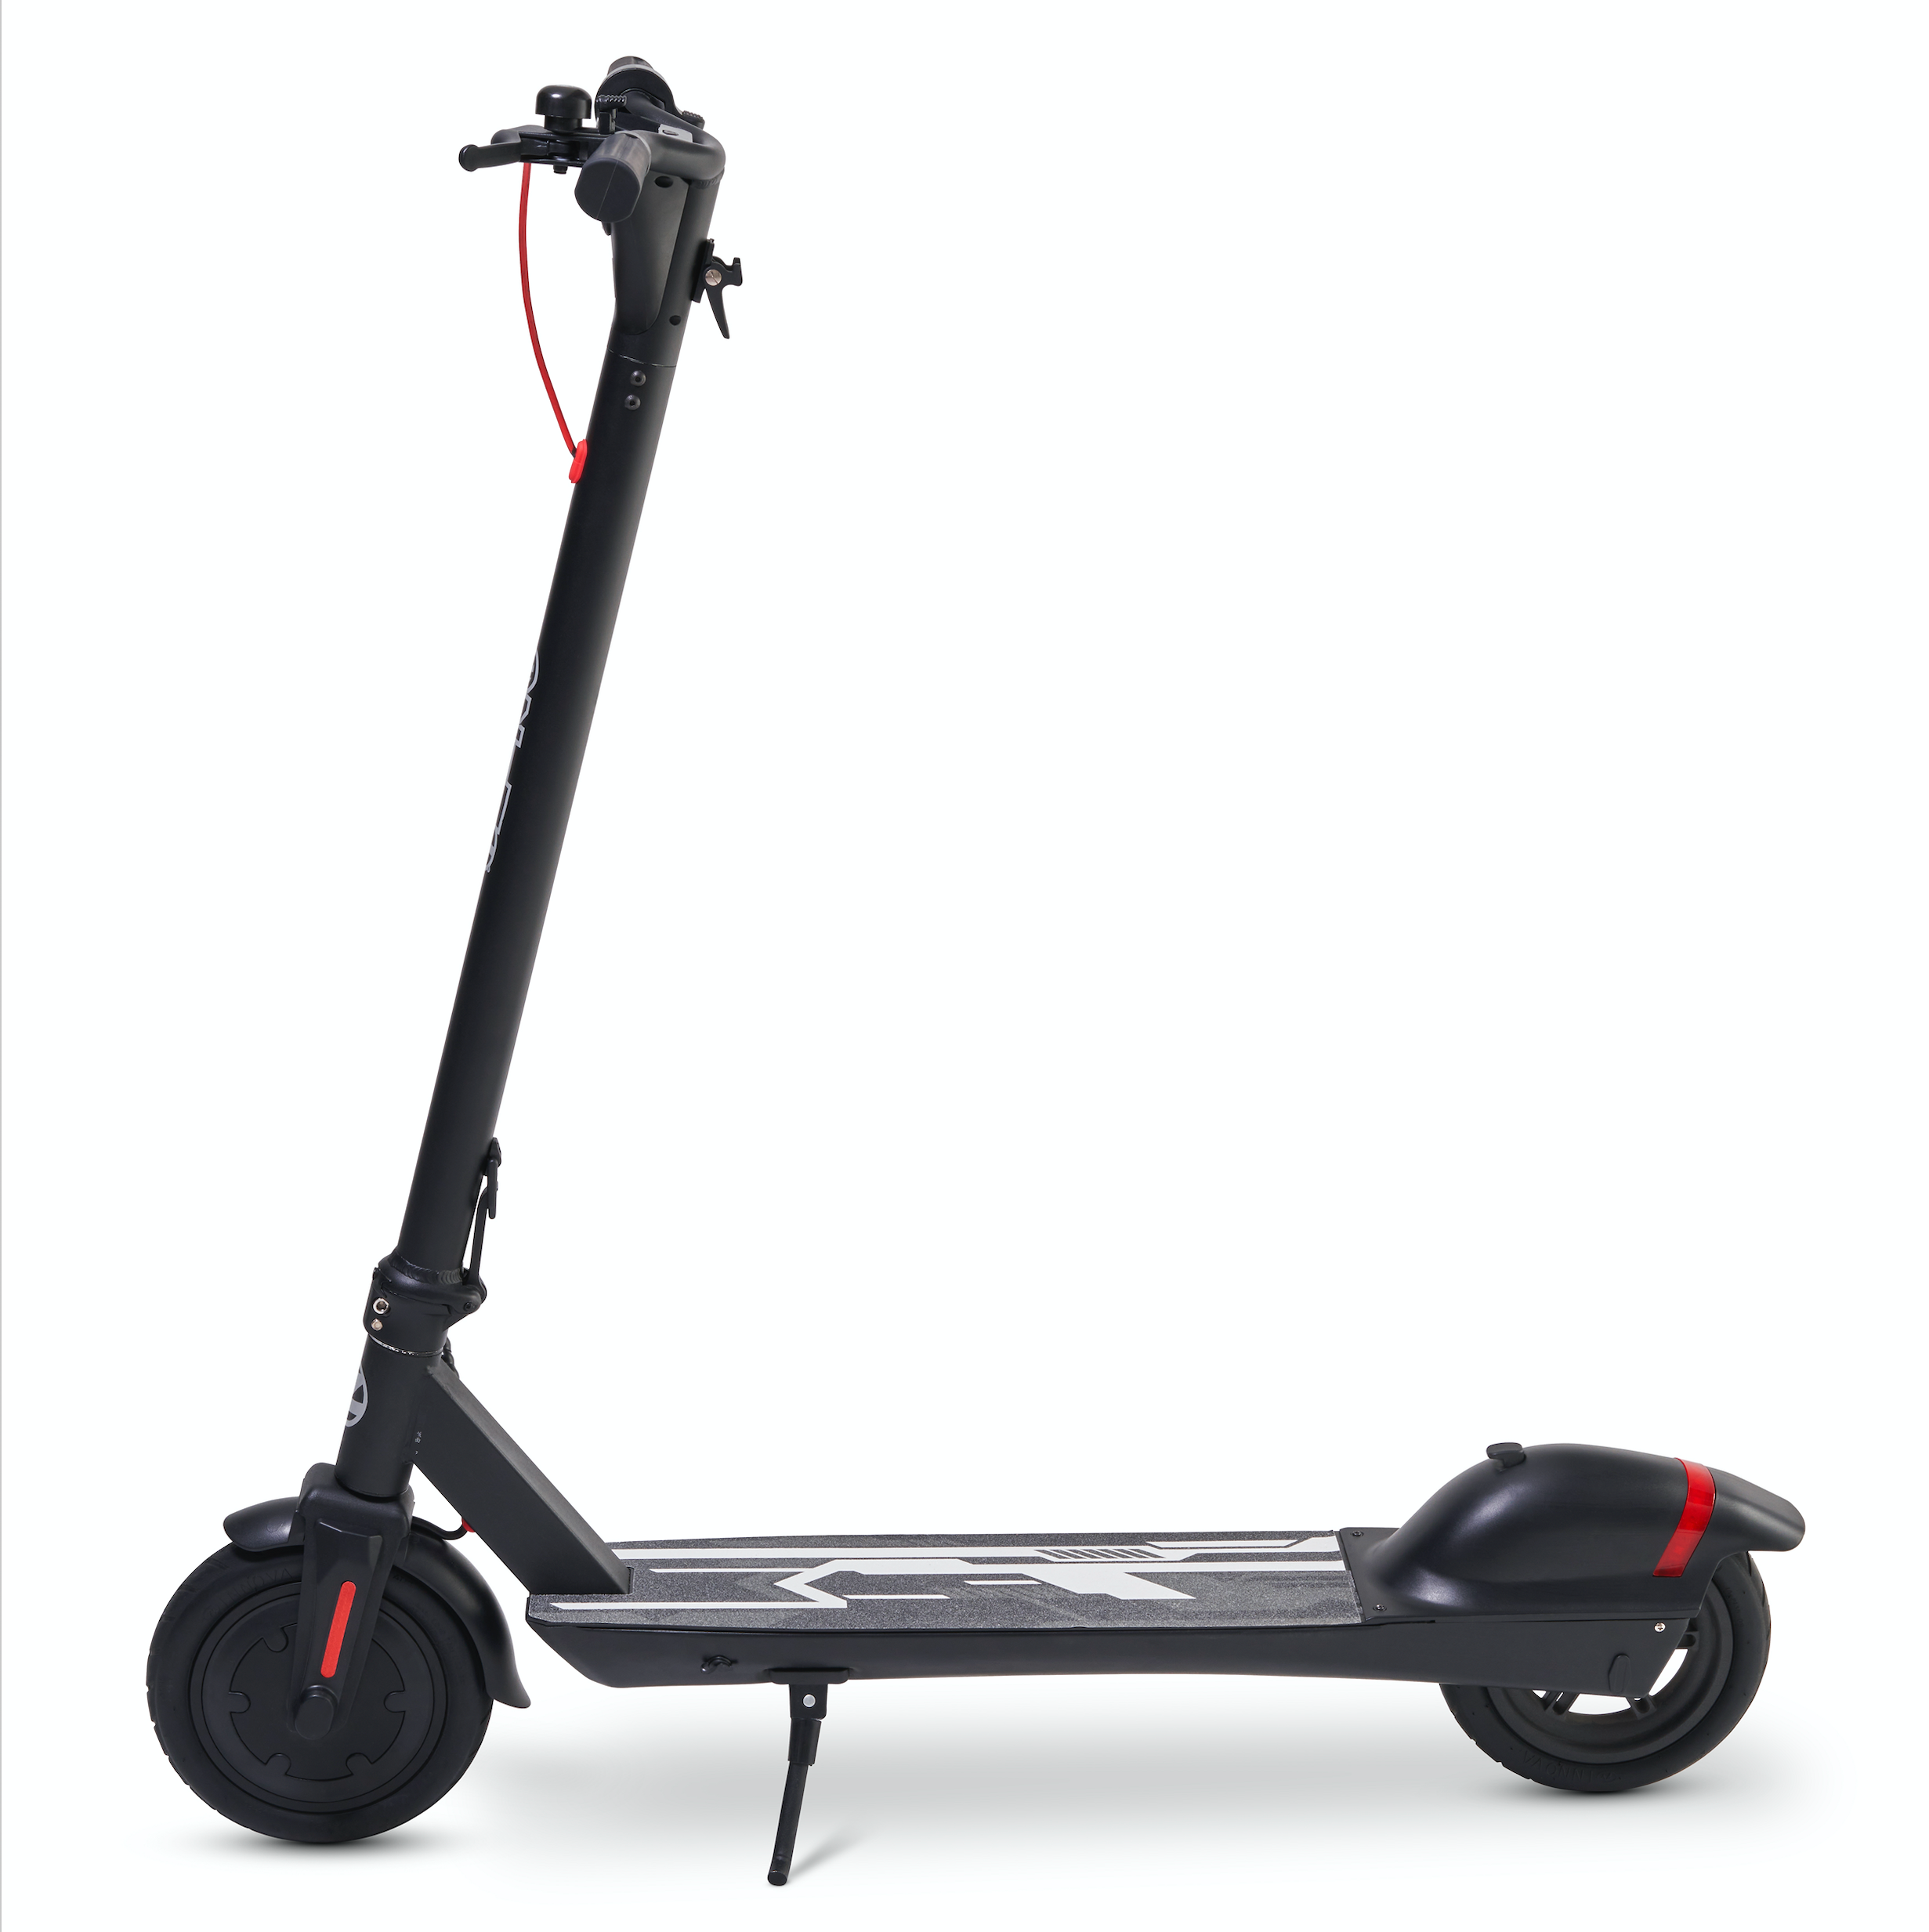 Zinc Eco Max Electric Scooter Profile View